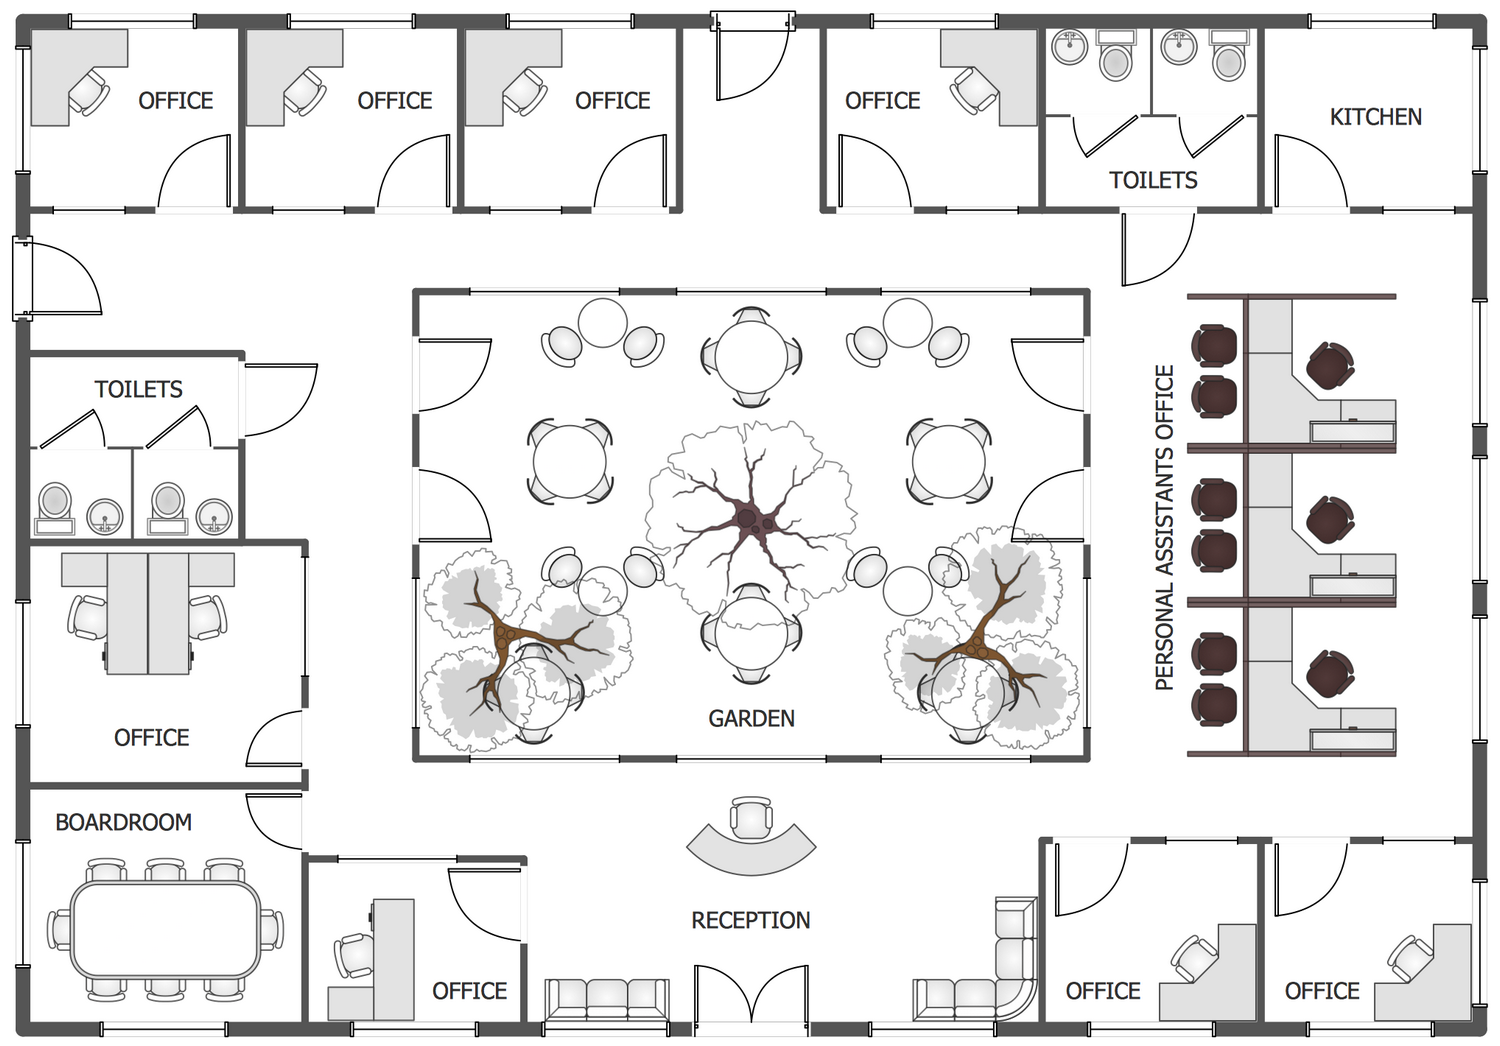 Image gallery office building plans for Draw office floor plan